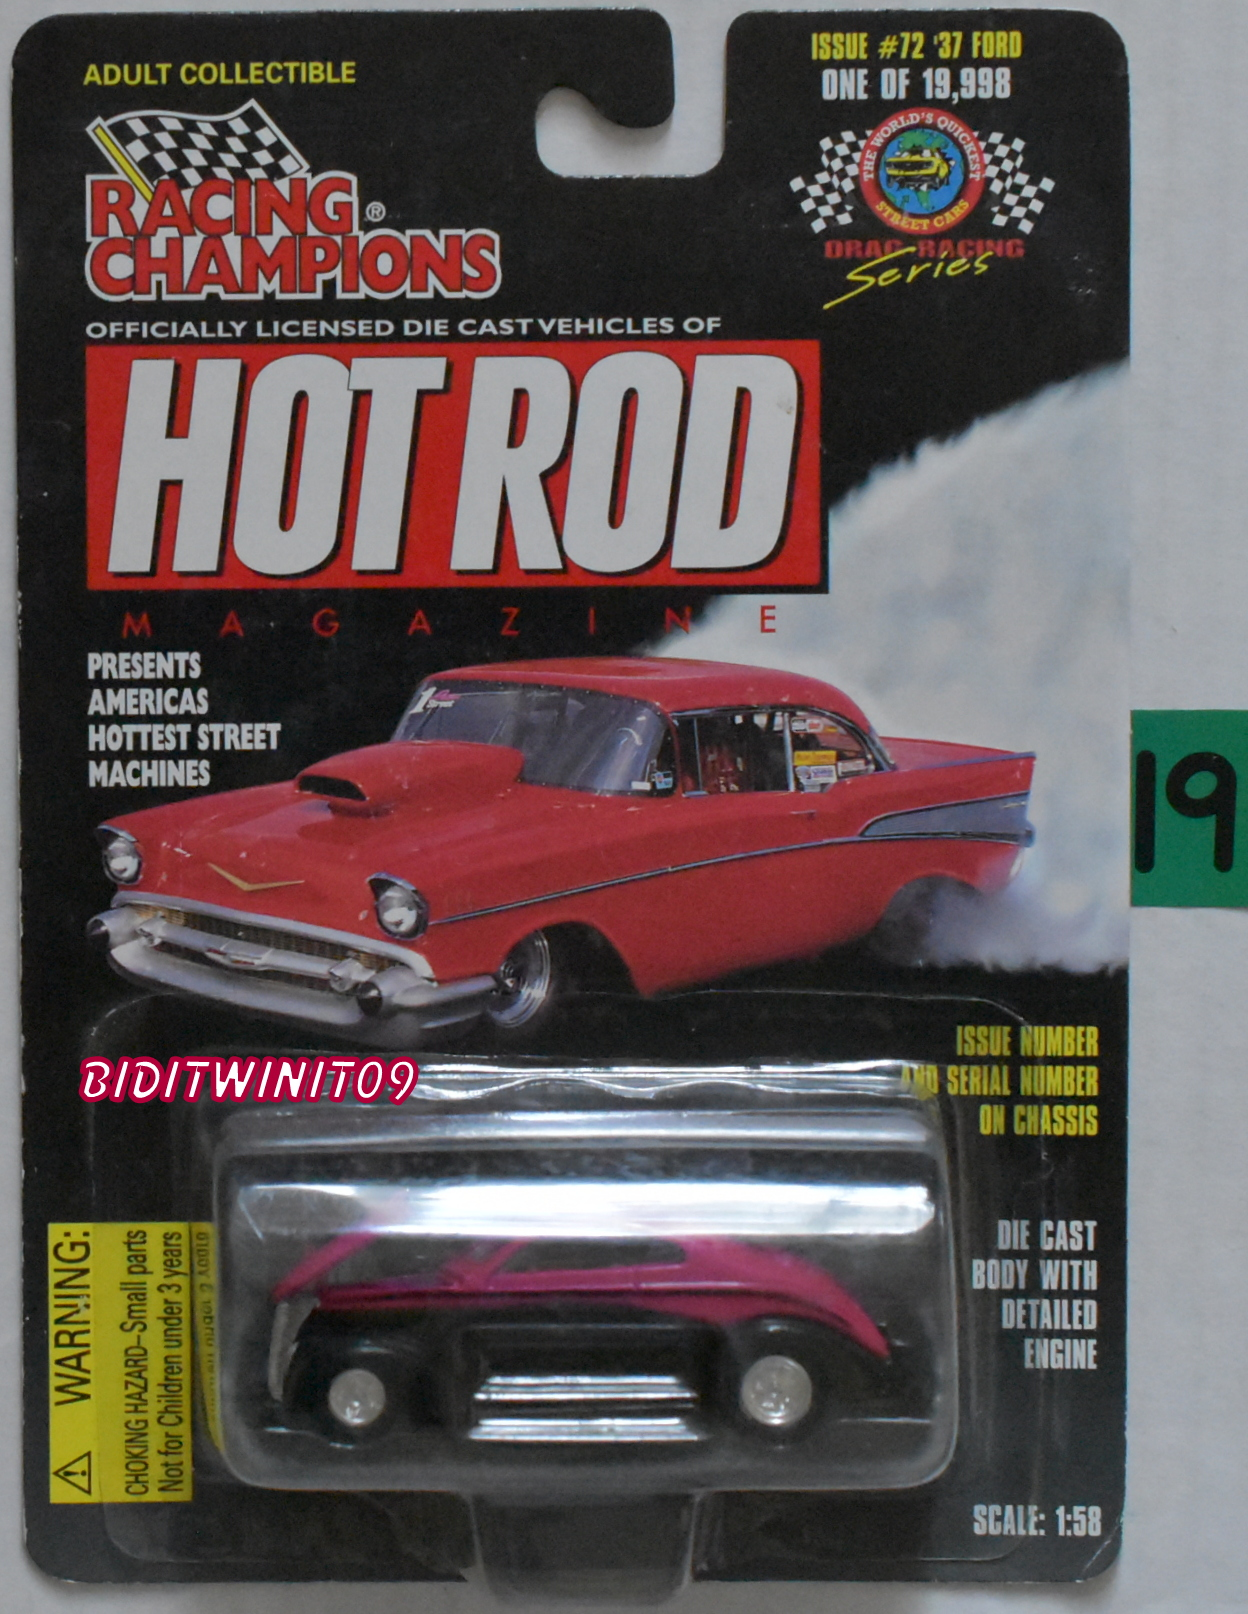 RACING CHAMPIONS HOT ROD MAGAZINE ISSUE #72 '37 FORD 1:58 SCALE E+